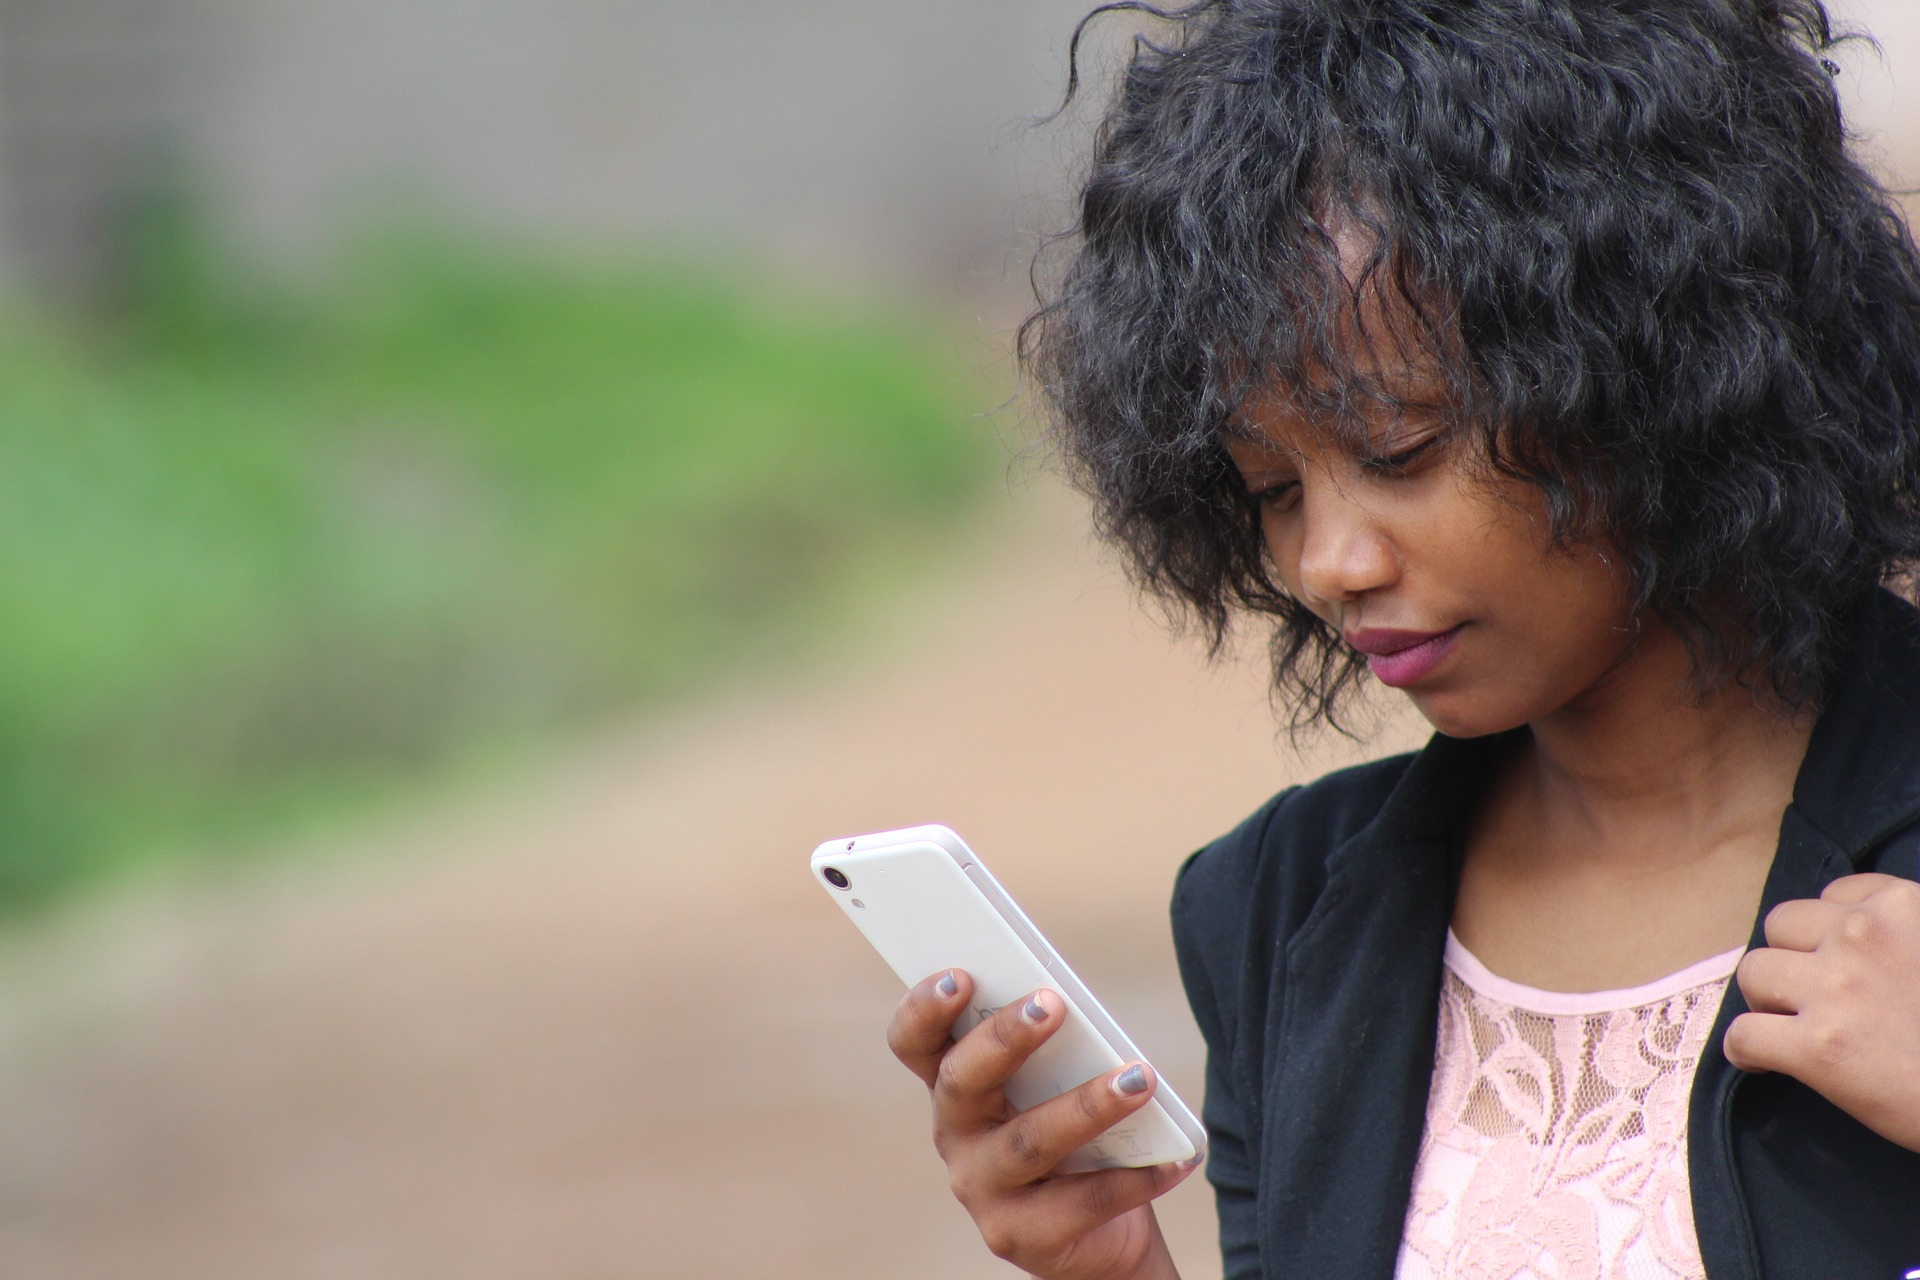 Why understanding technology is vital in tackling domestic abuse